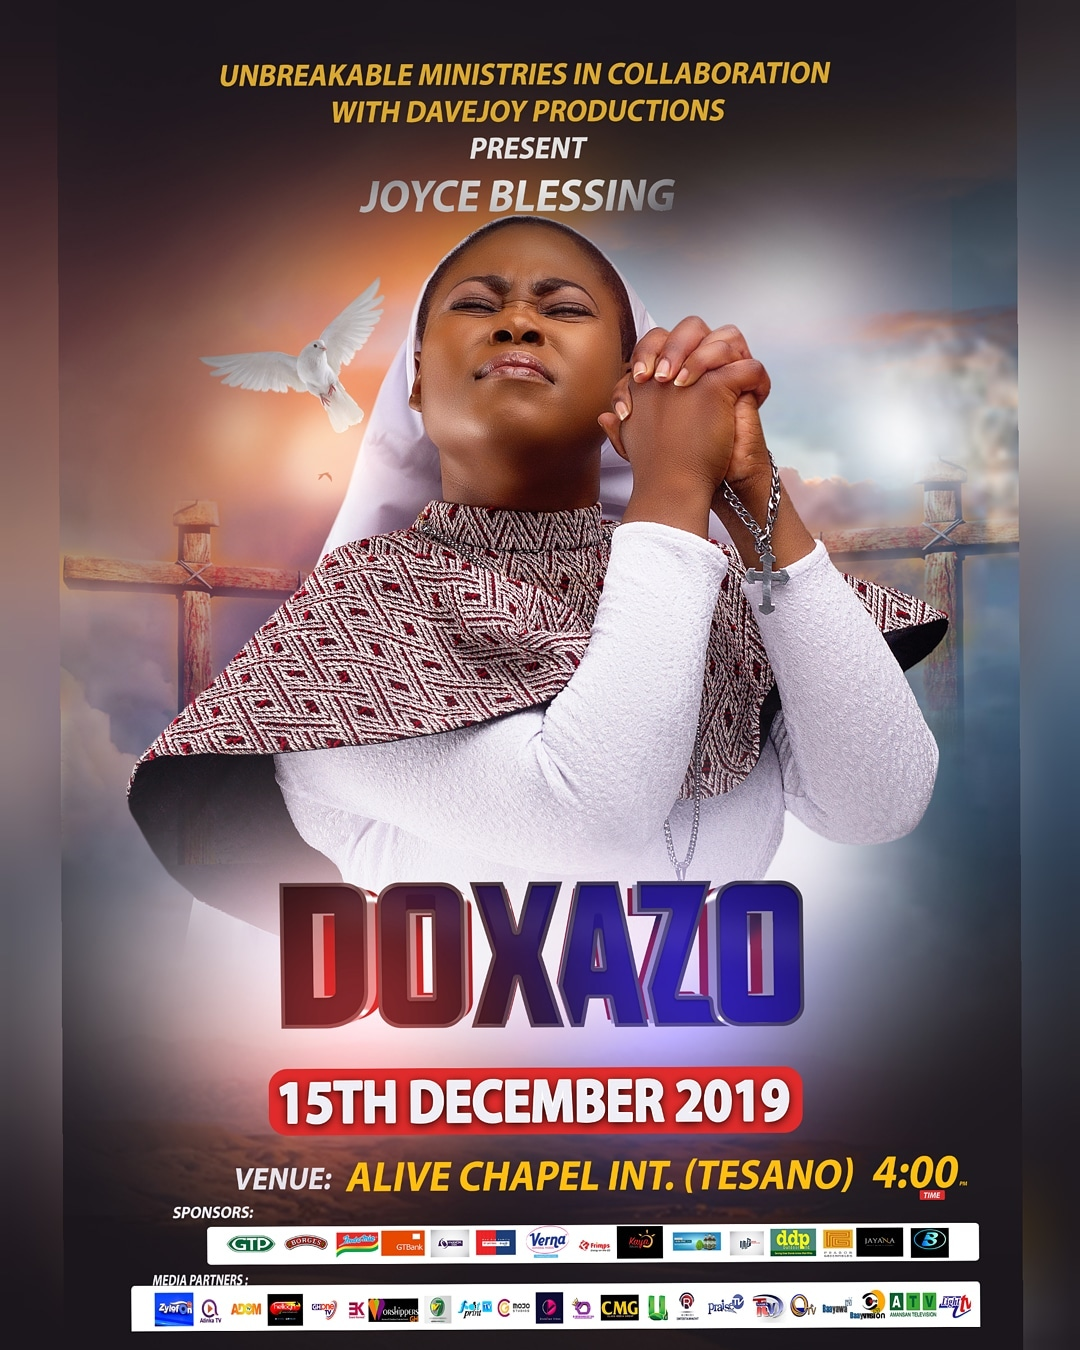 Stream Or Download Joyce Blessing To Hold Doxazo 2019 On December 15th 1 Week Ago Album Zip Download Music Downloads